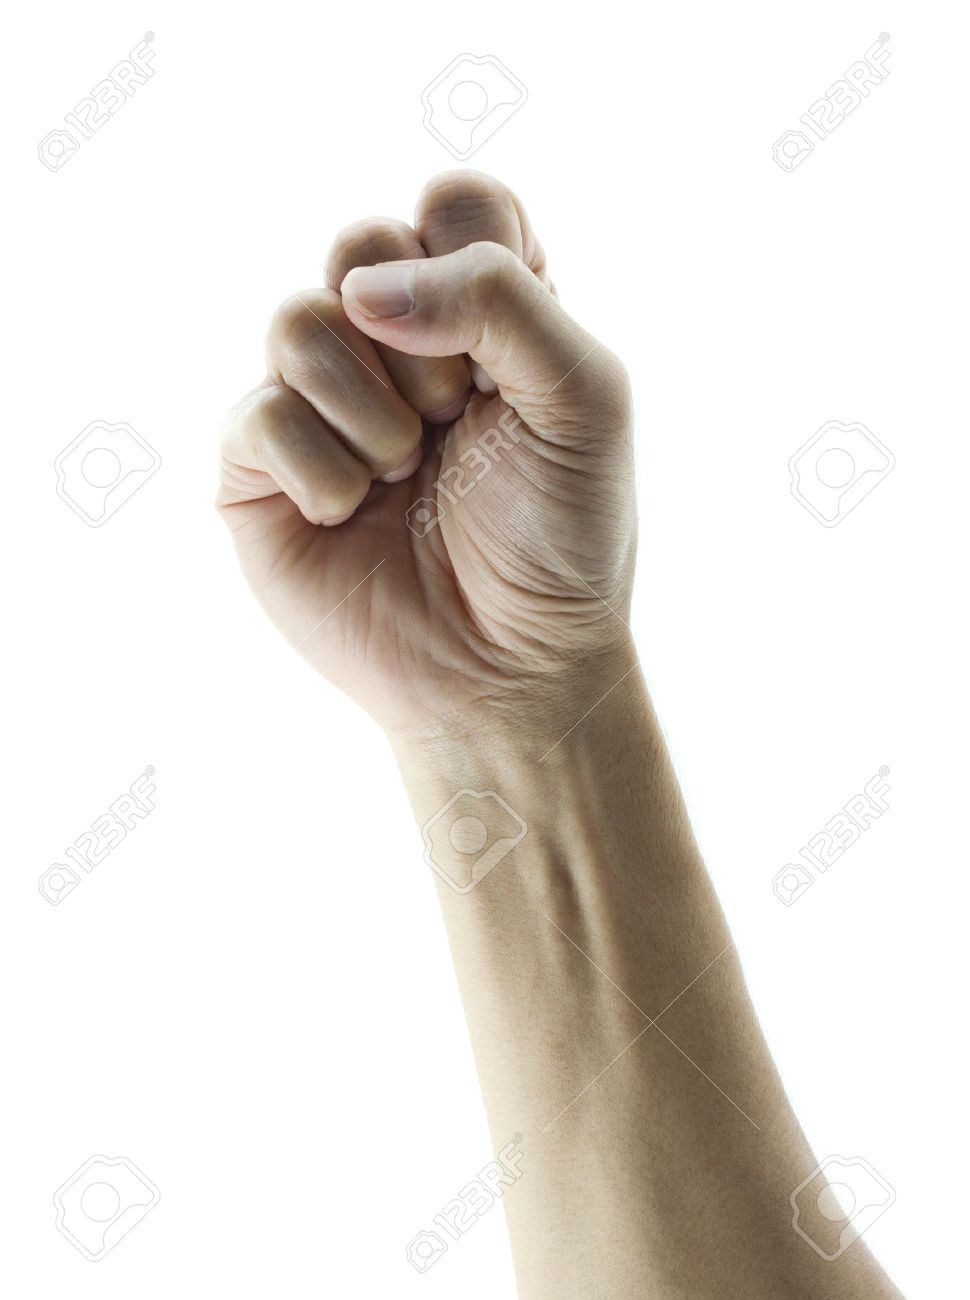 clenched fist hand closeup white background conceptual studio Stock Photo - 12851764